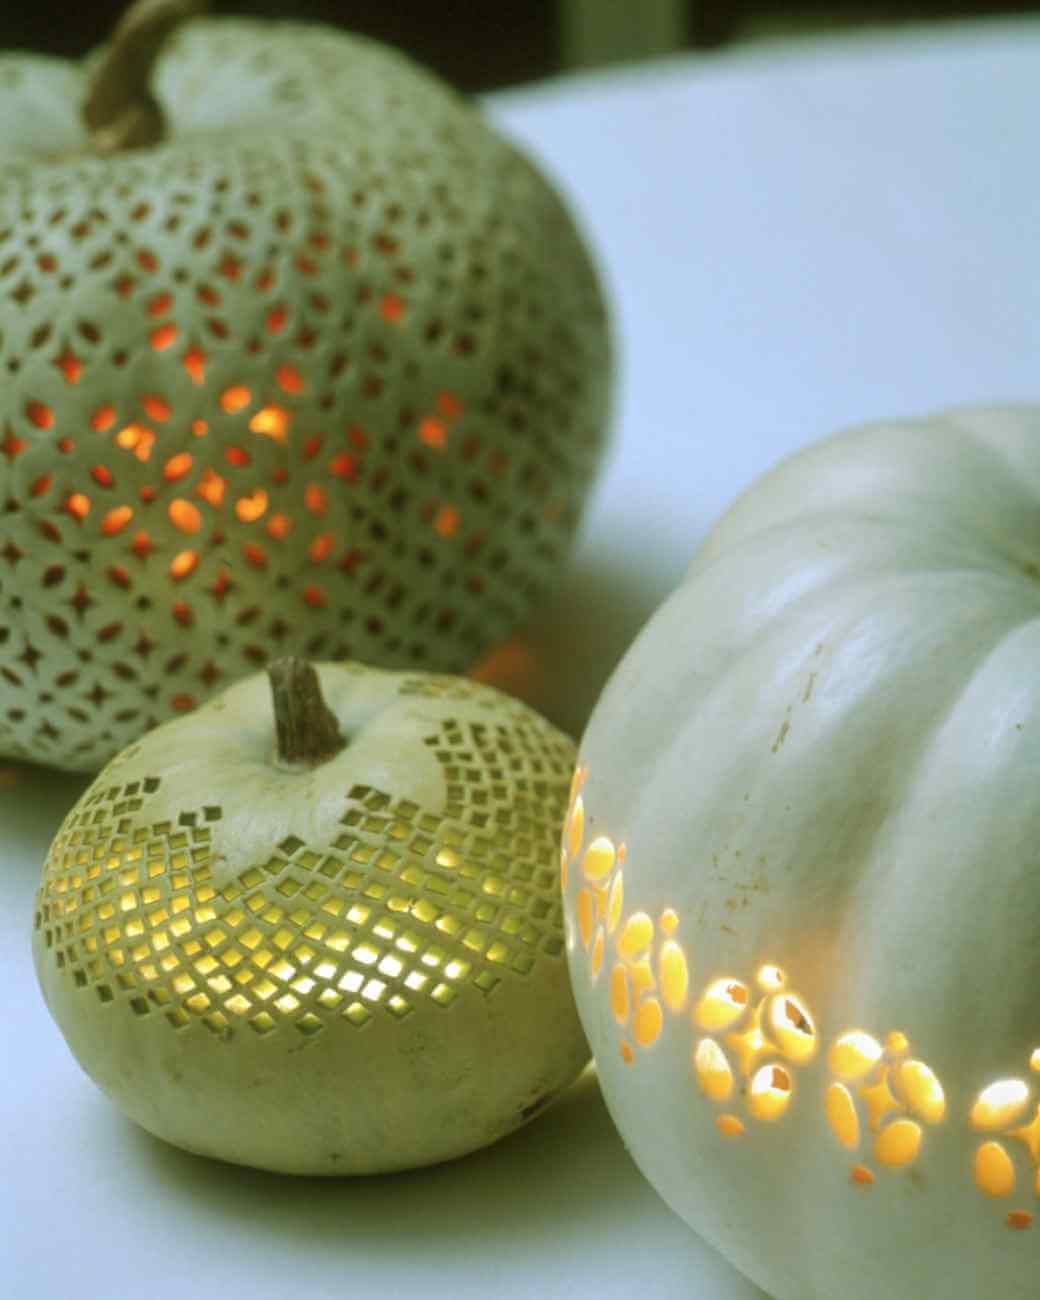 Lace Patterned Pumpkins